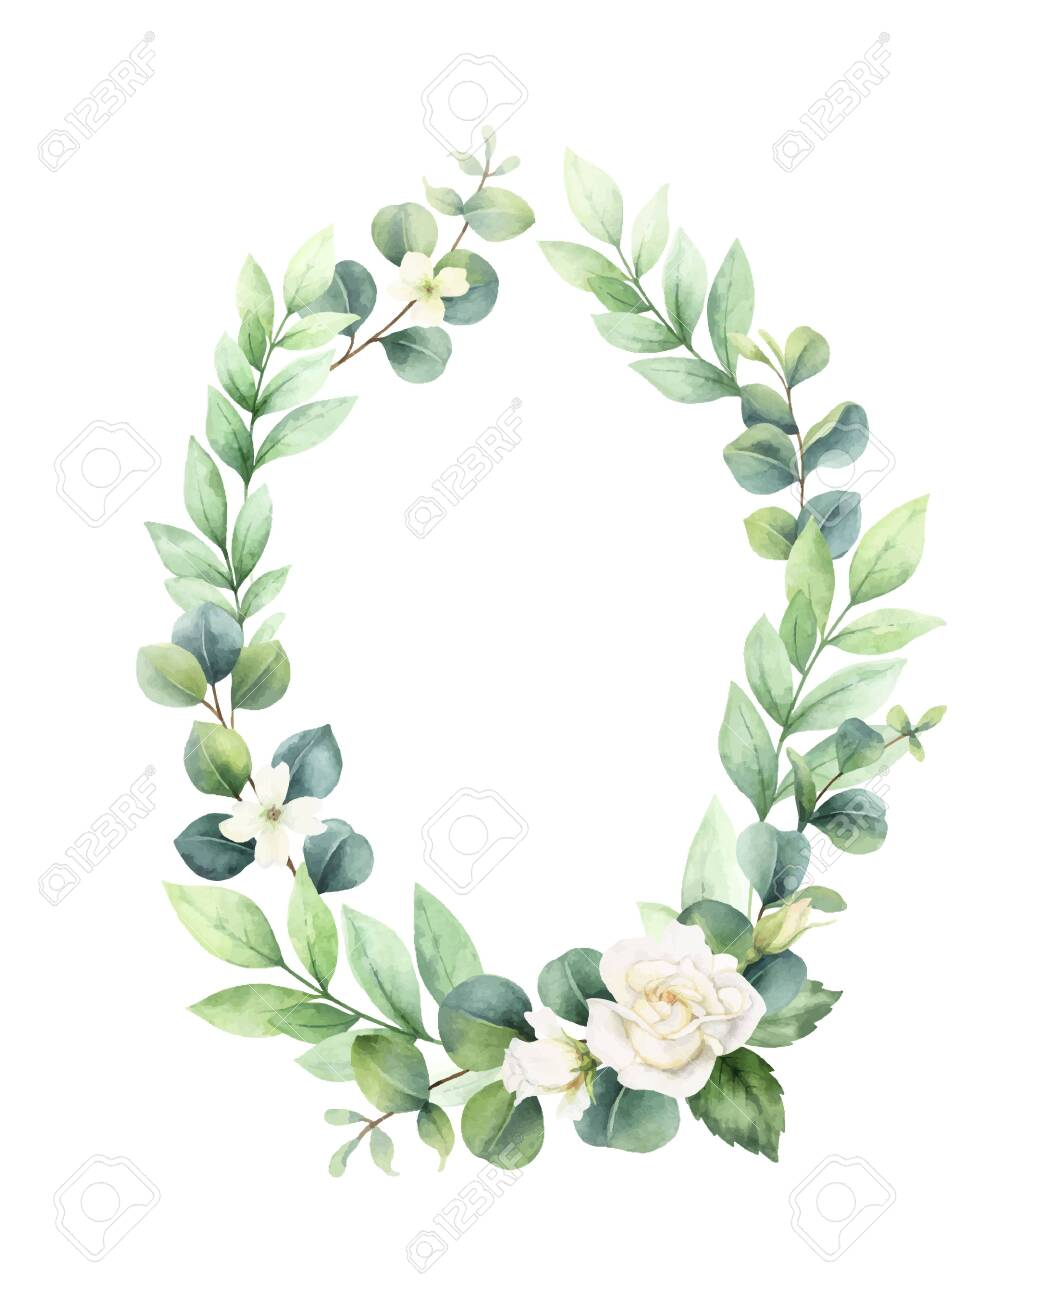 Watercolor vector hand painted wreath with green eucalyptus leaves and roses. - 147676486